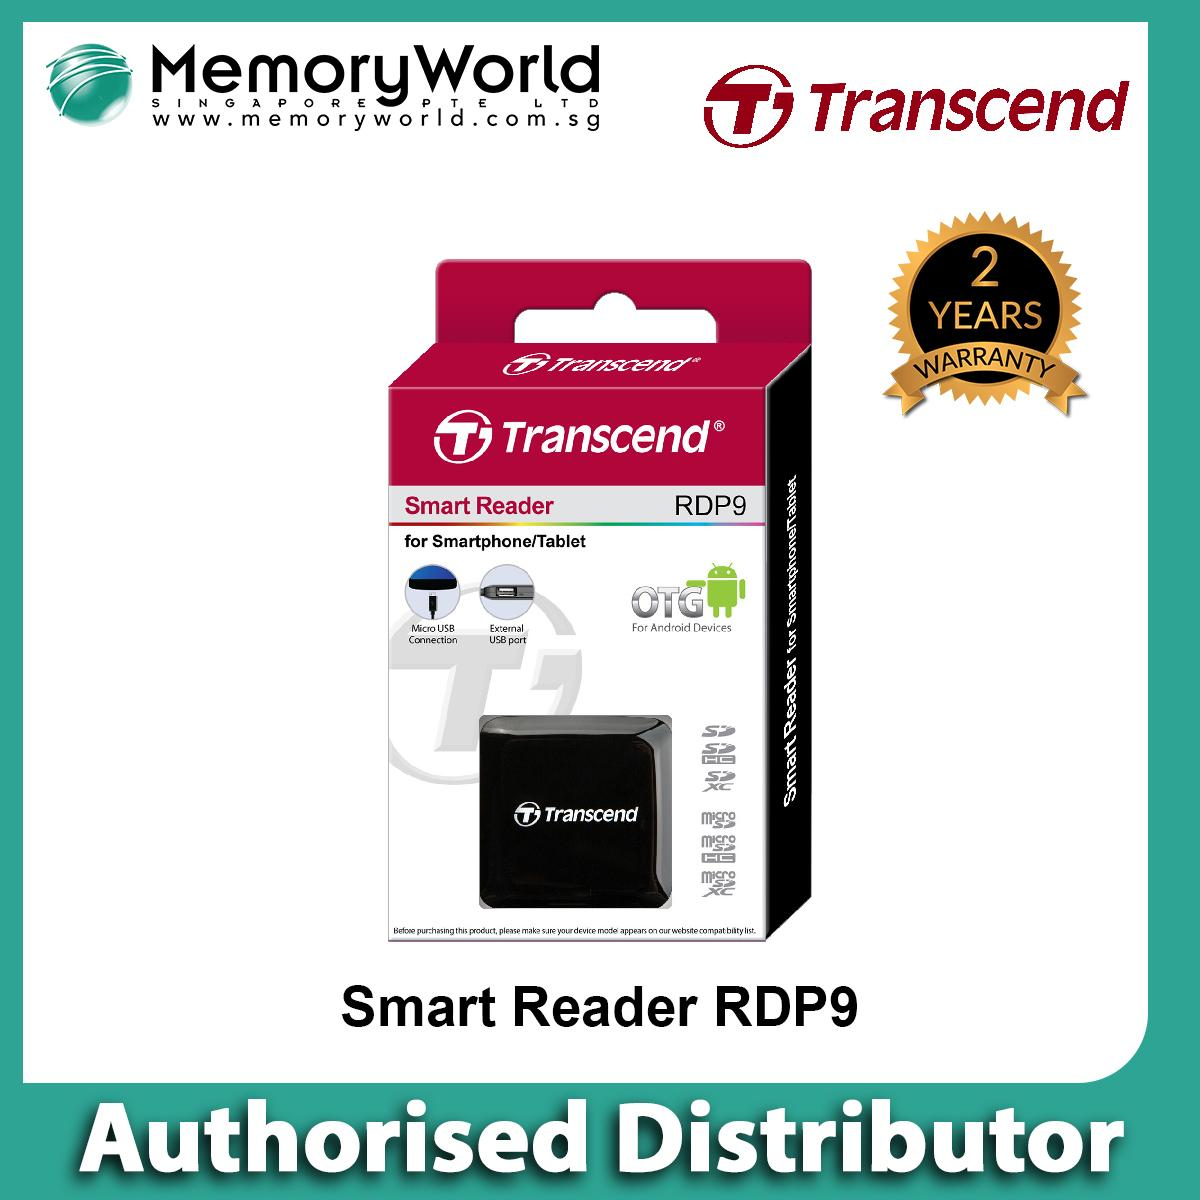 Transcend Smart Reader TS-RDP9K (OTG) - Android . Warranty: 2 years. Local Singapore Warranty. **TRANSCEND Authorised Distributor **